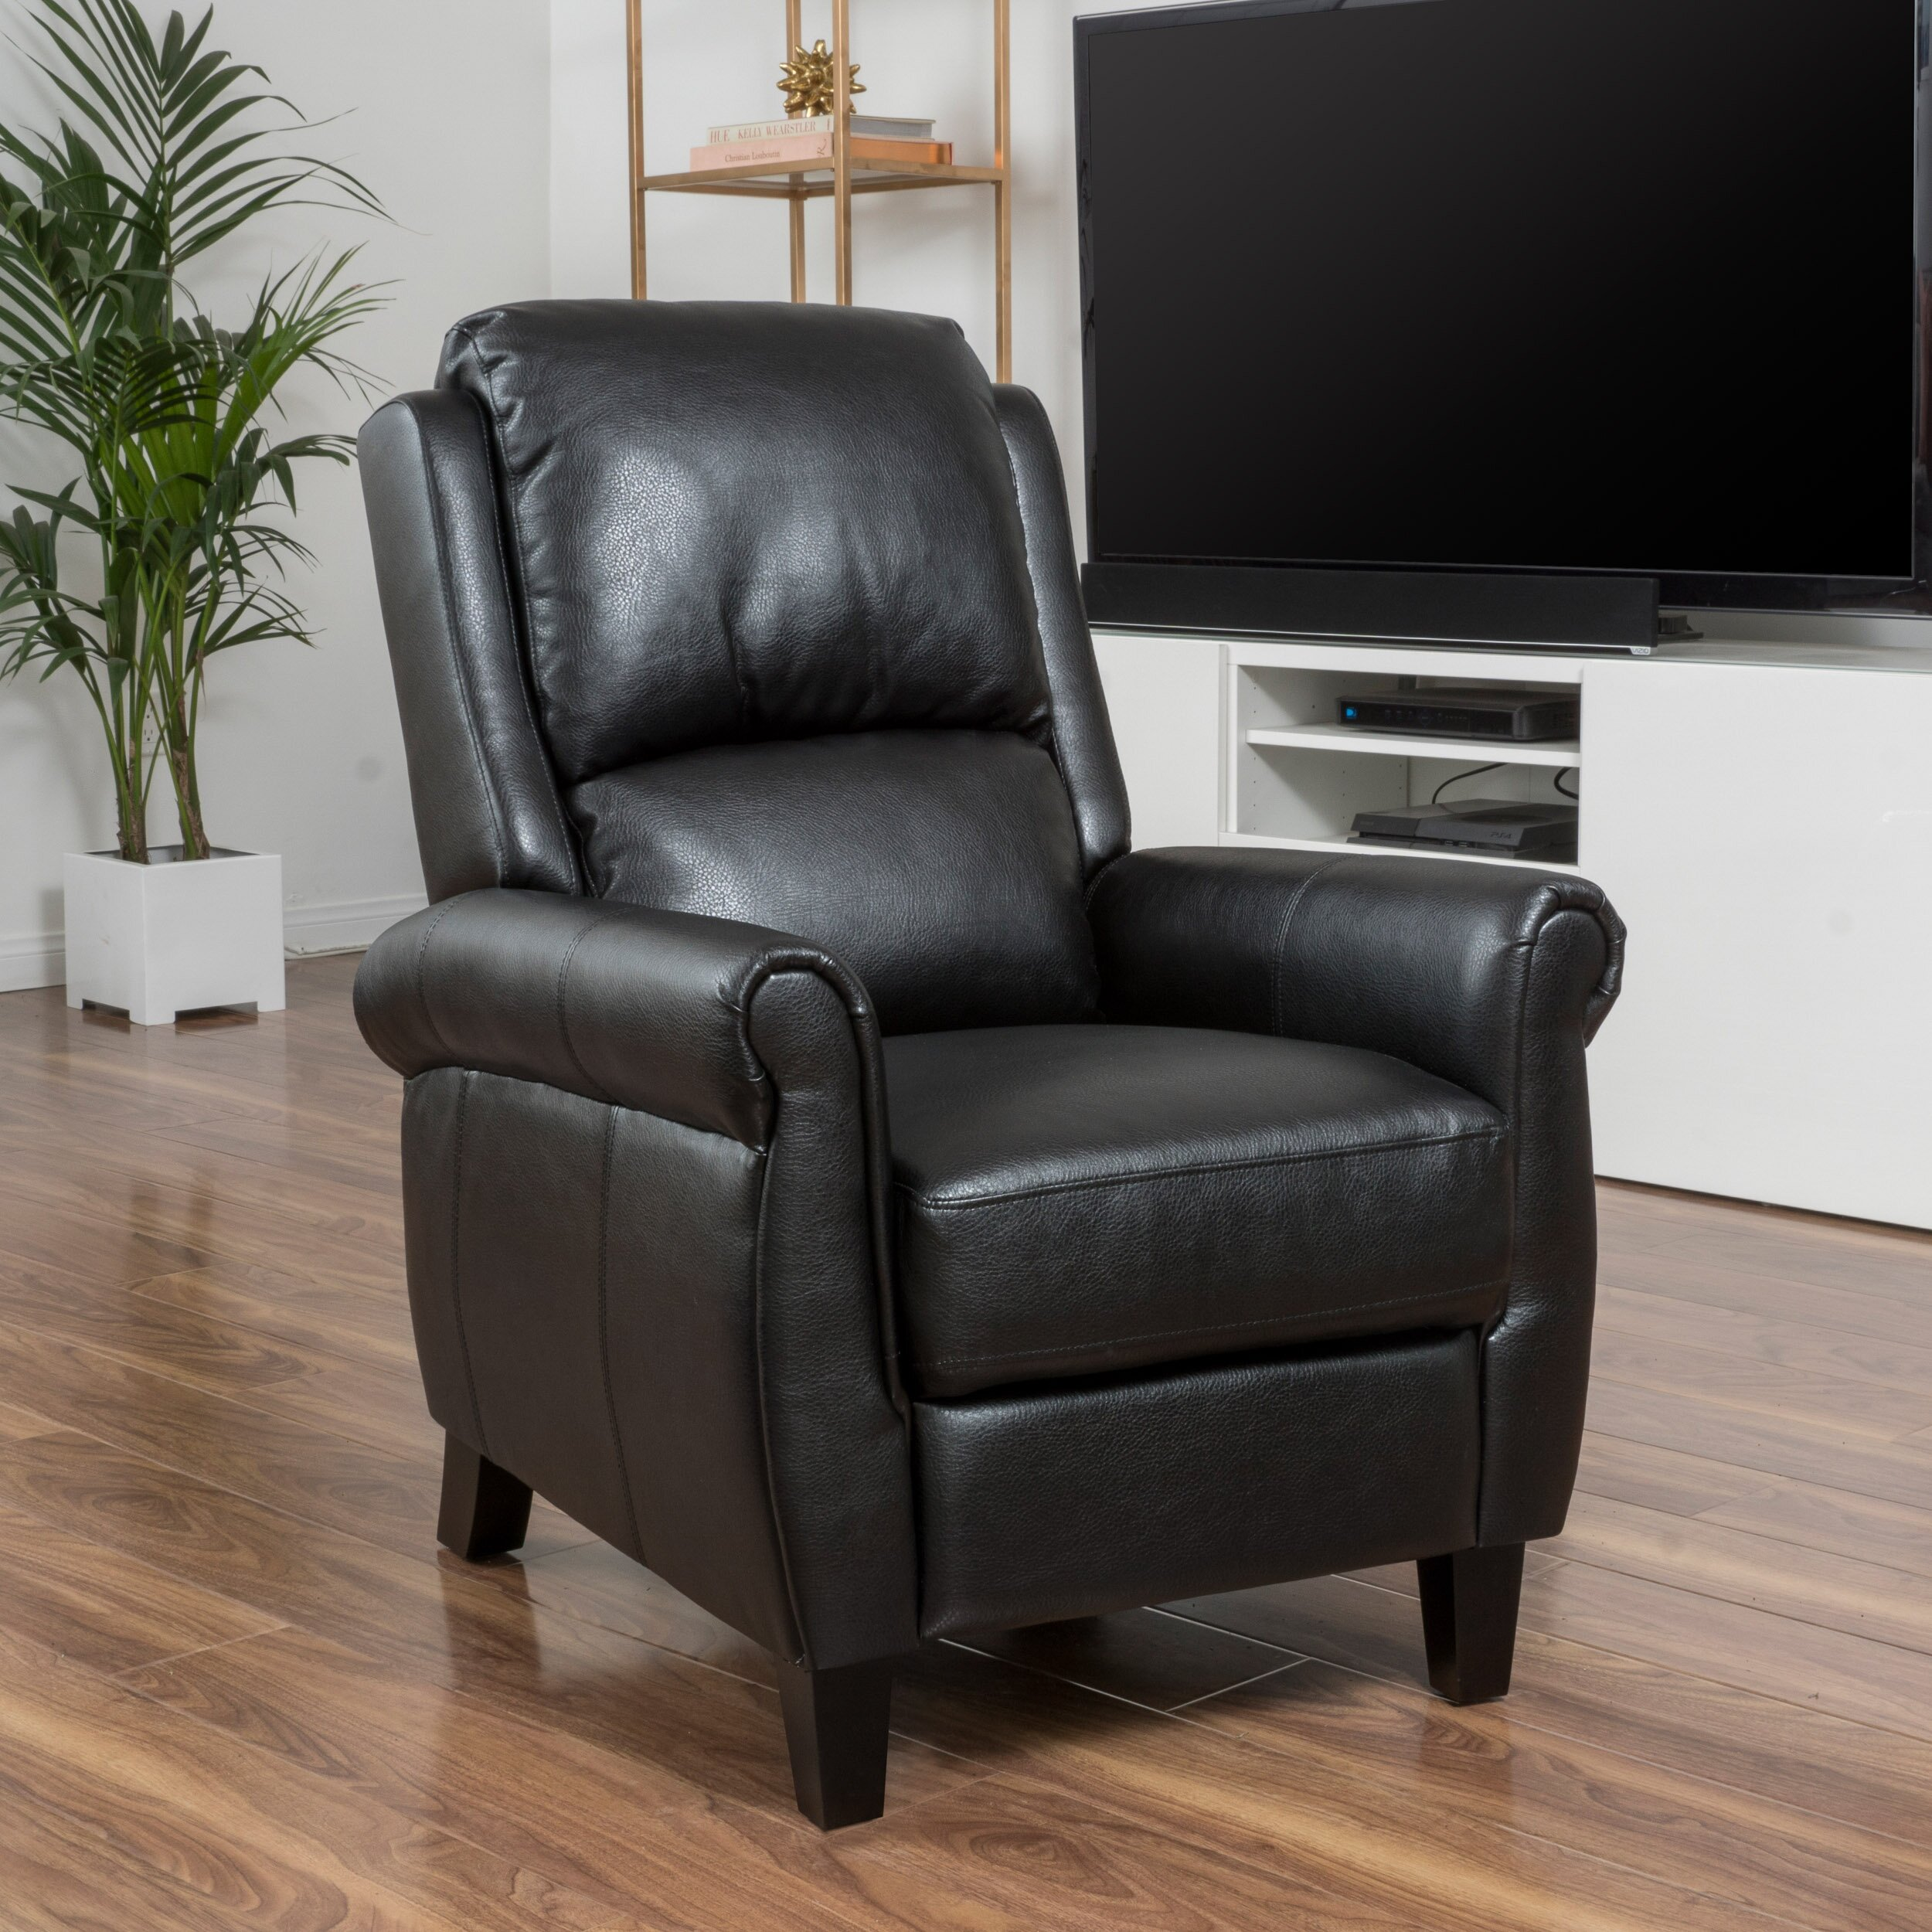 Recliners that look like chairs - Three Posts Deerfiled Pu Leather Recliner Club Chair